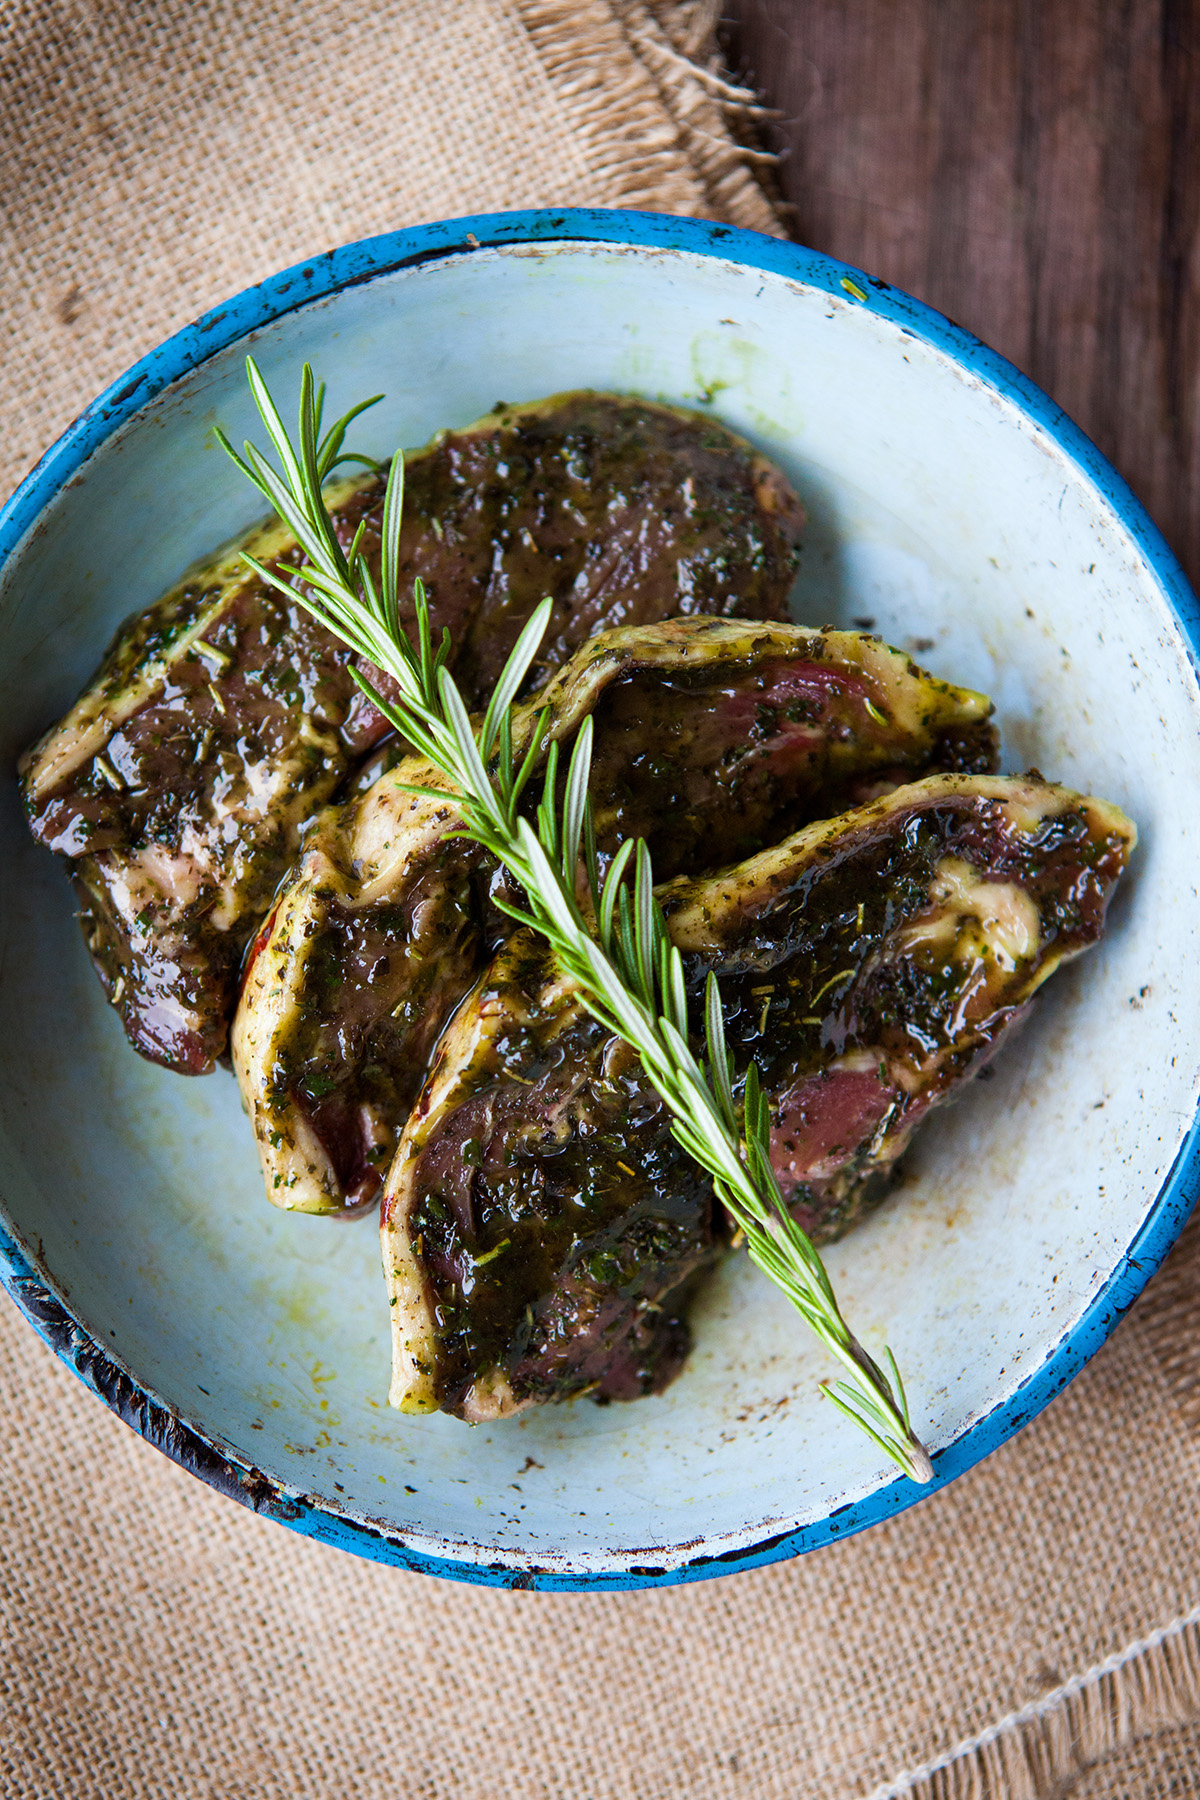 how to make lamb steak sauce